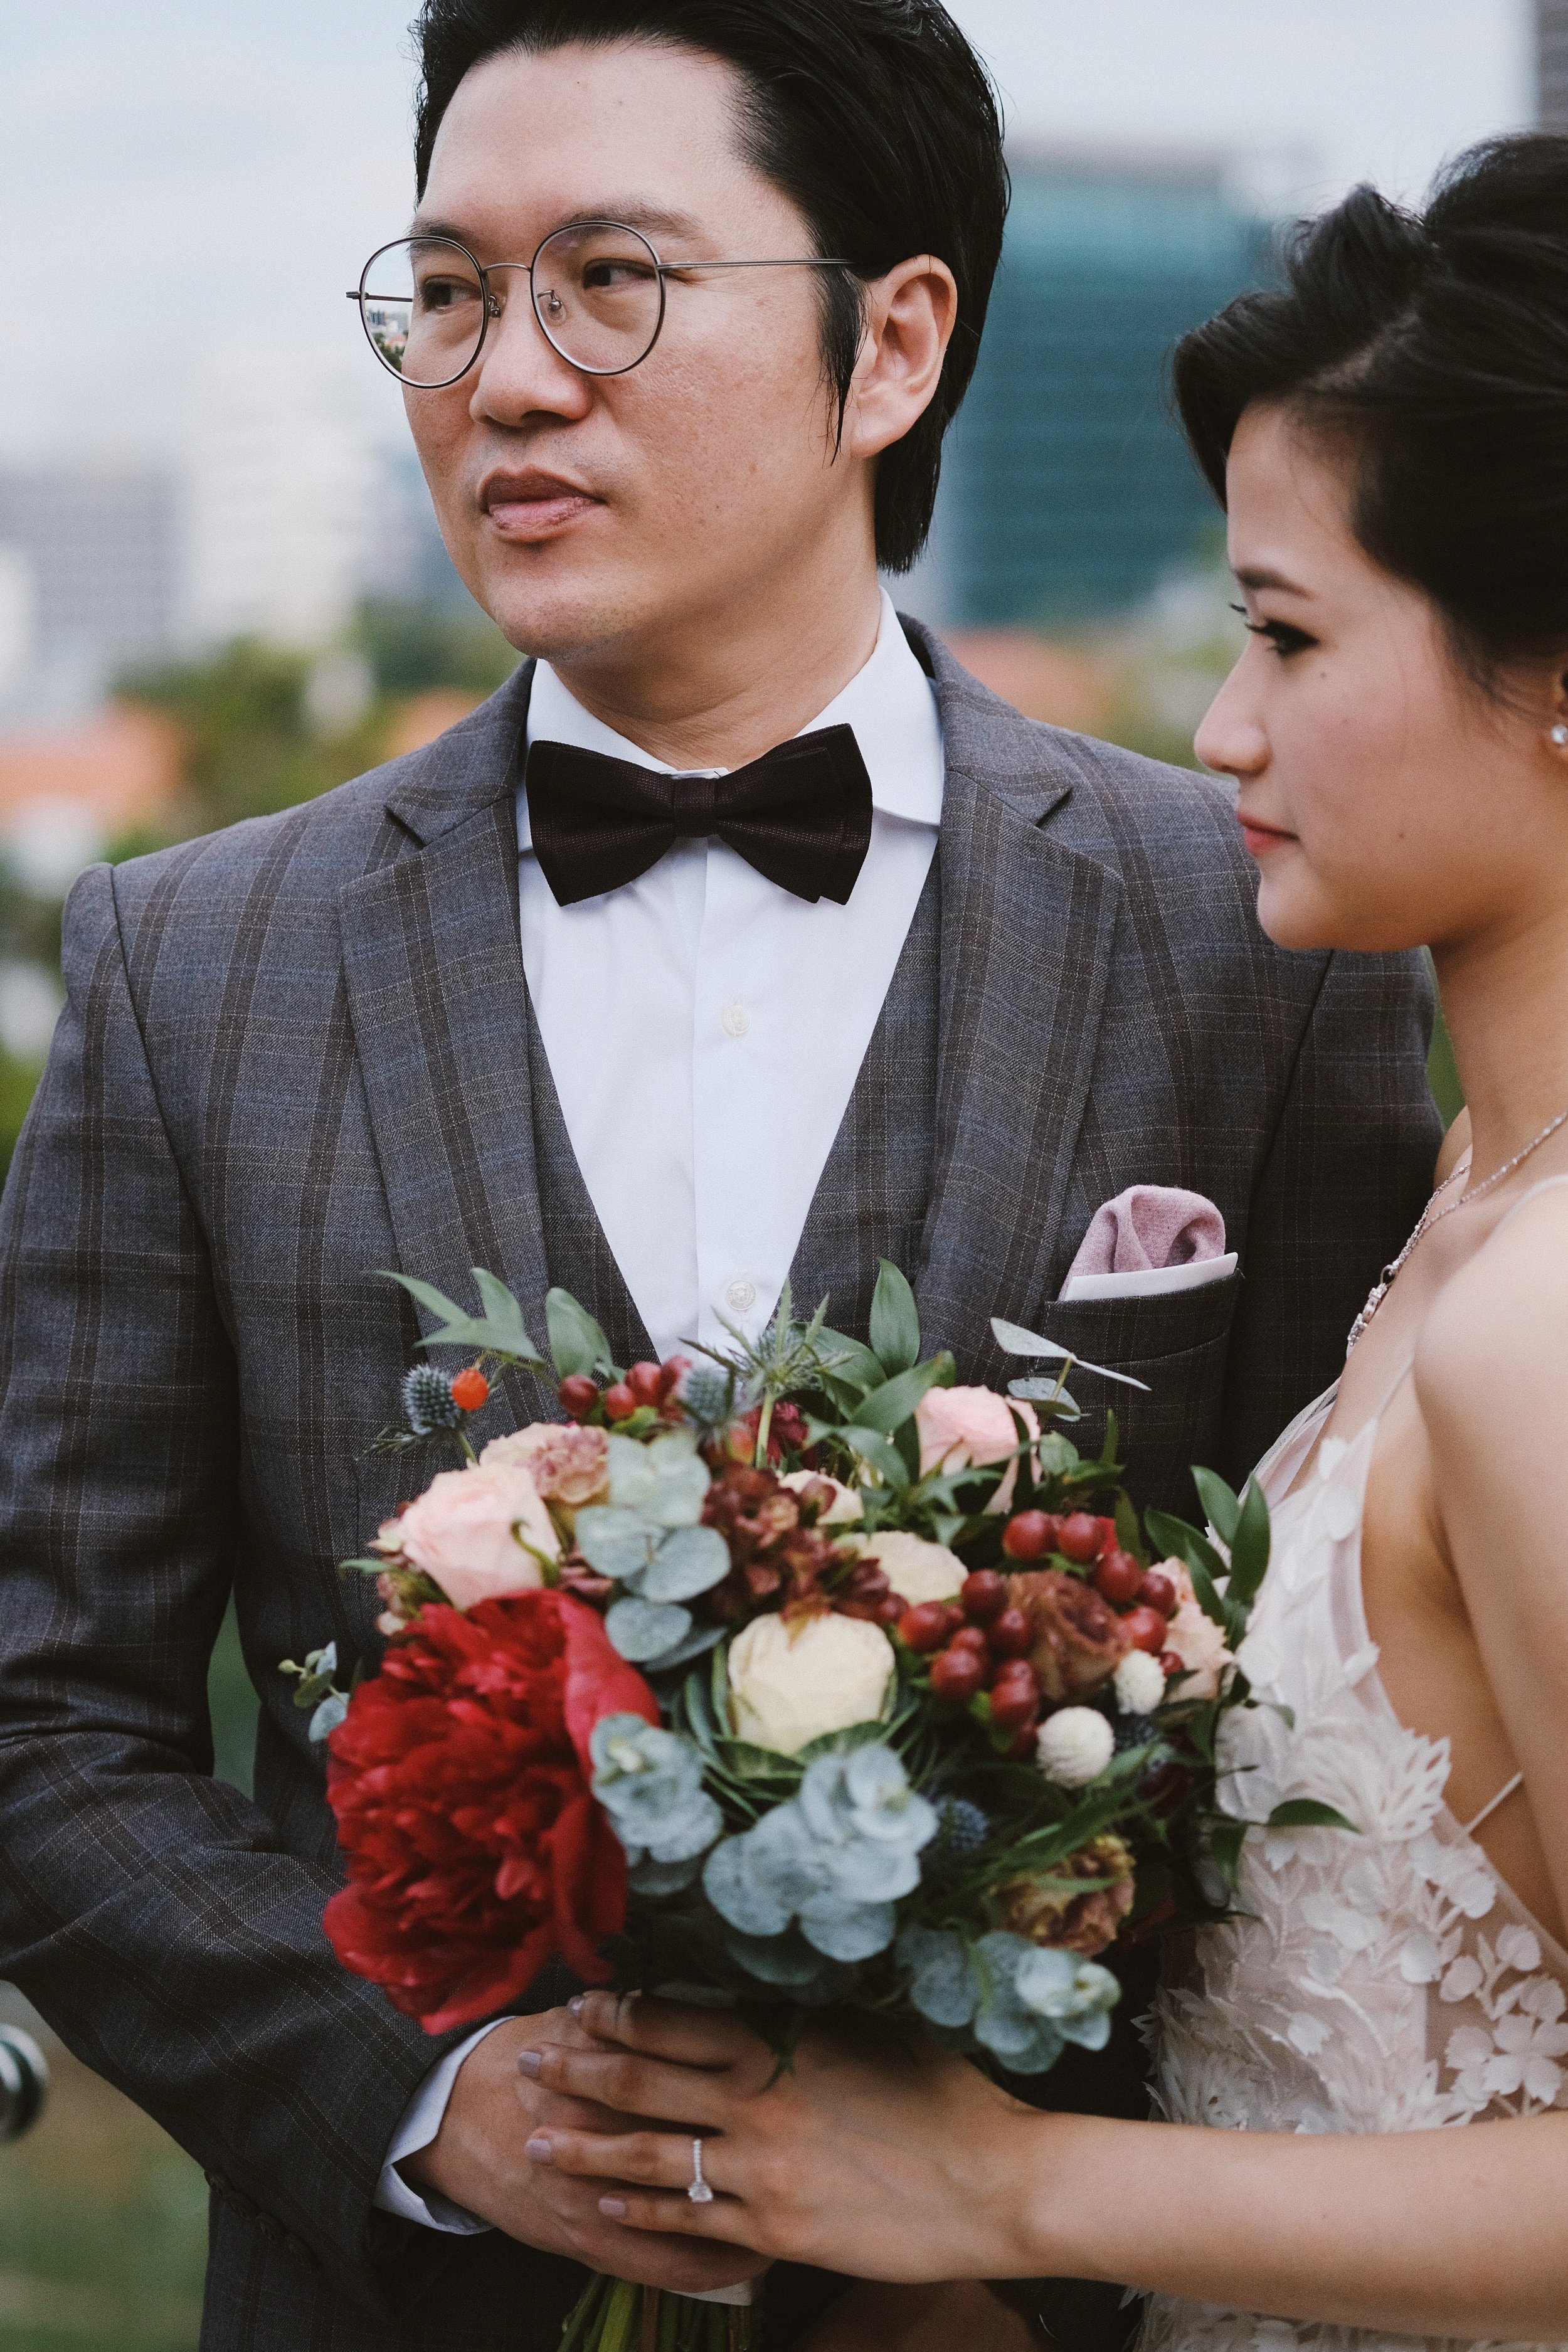 60mm f/2.4 macro XF at a wedding. Shot wide open